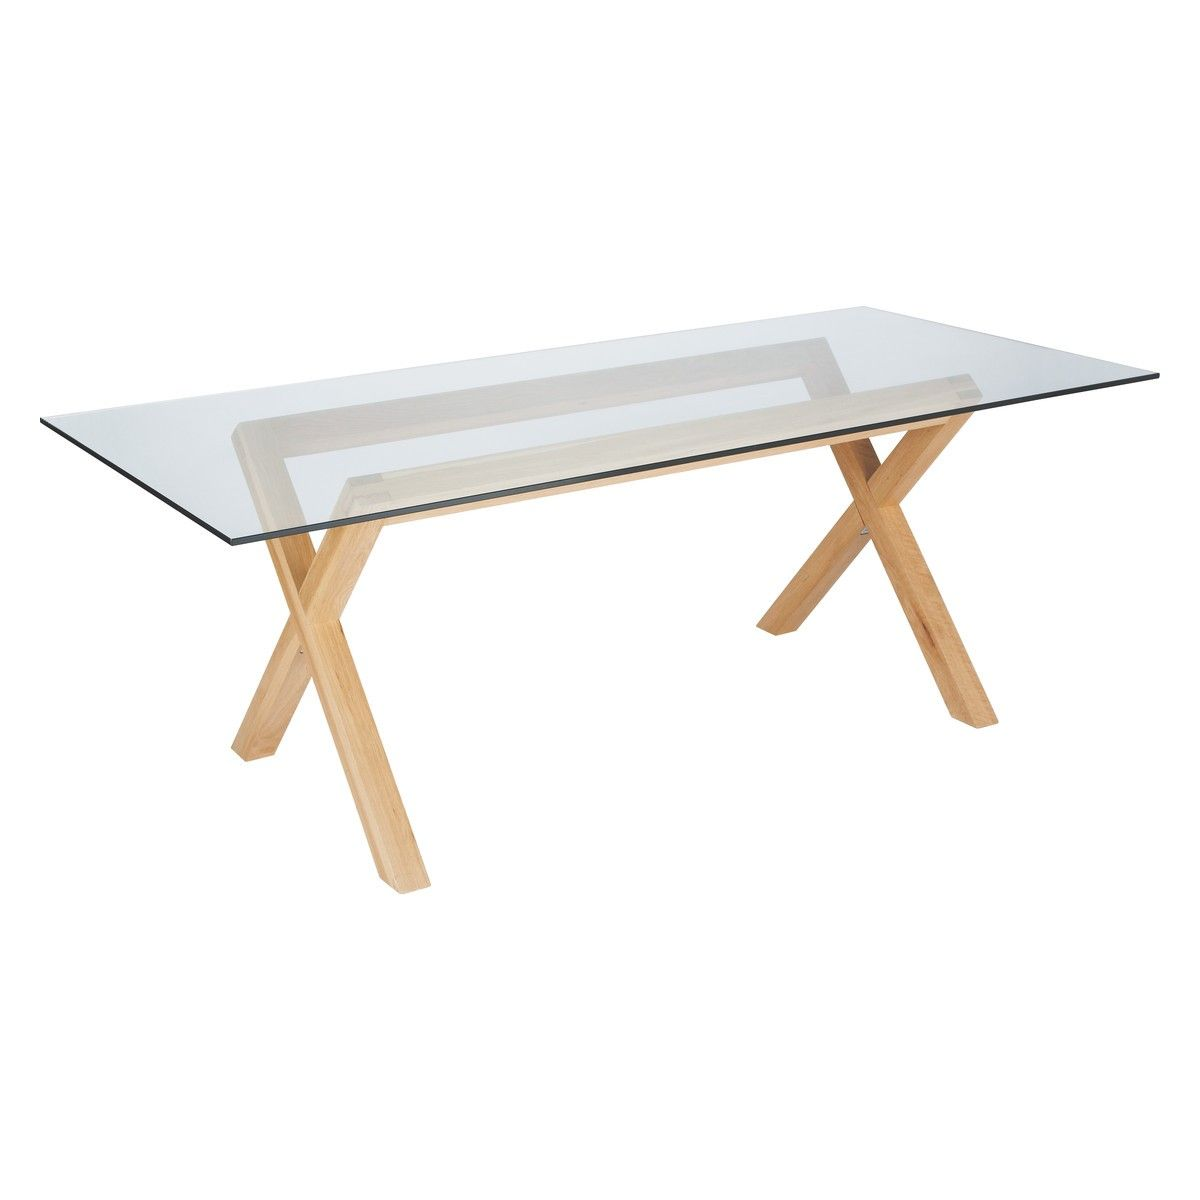 Lagon 160 X 80cm Clear Glass Top For Desks With Kusa Oak Legs